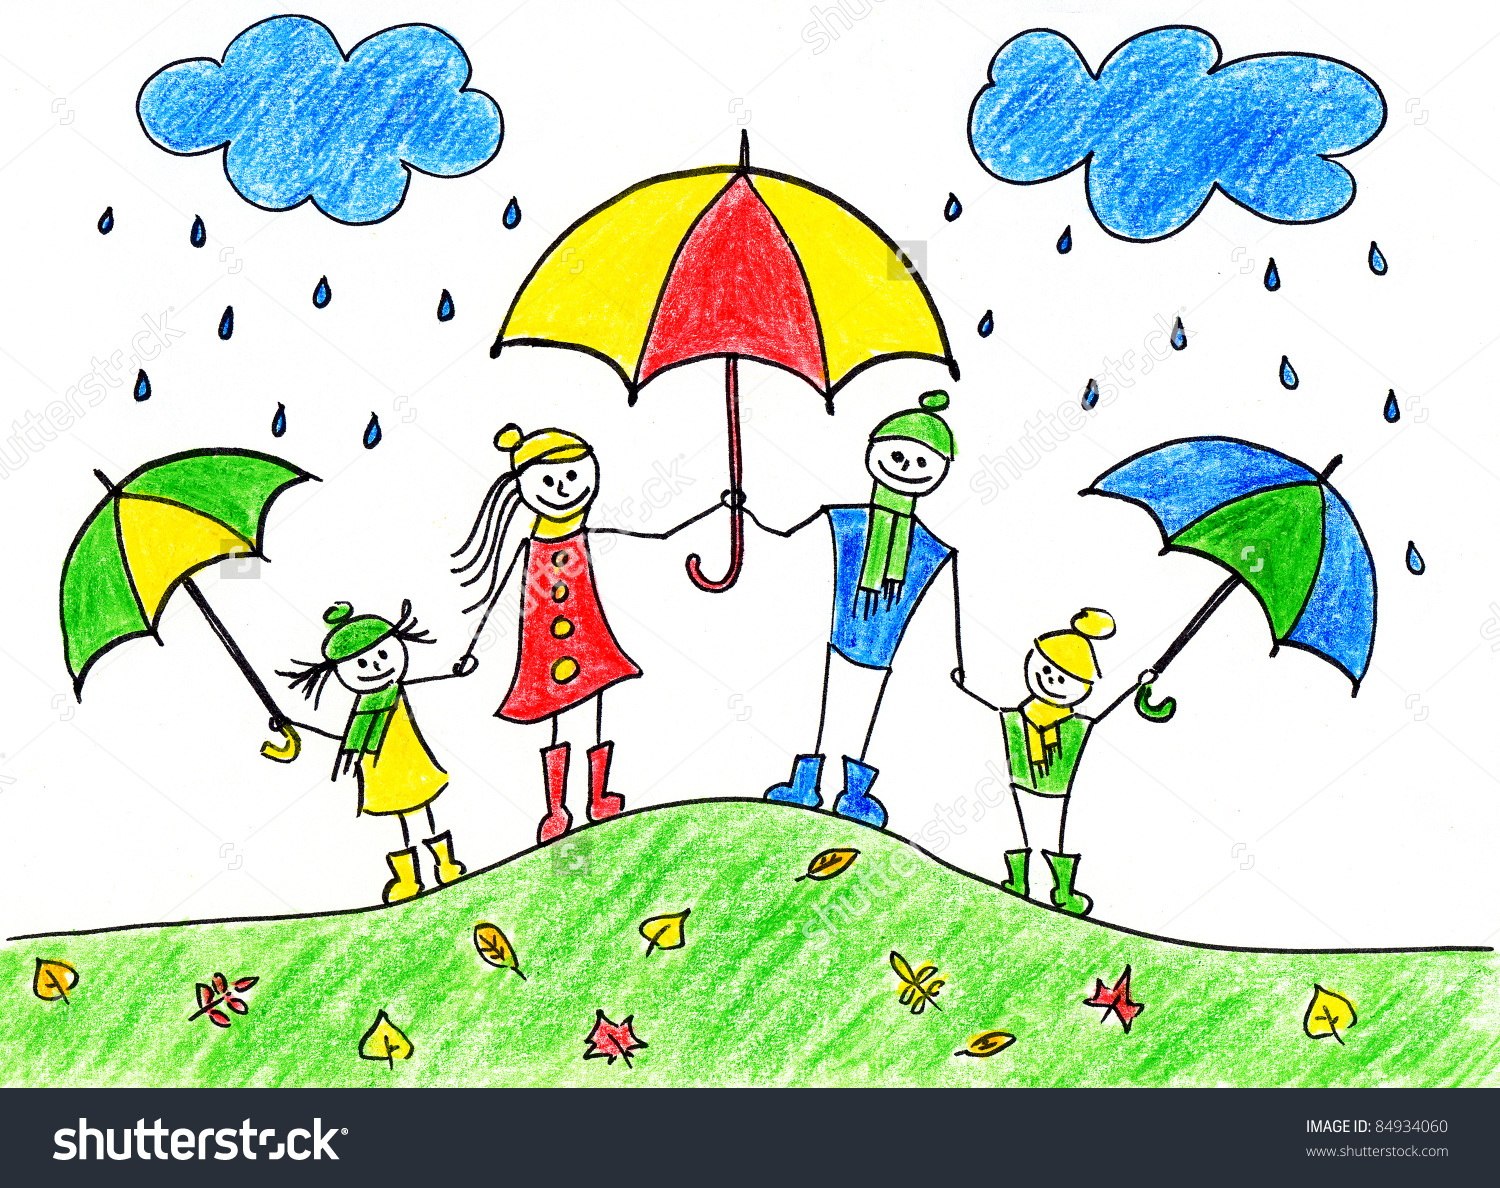 Rainy Day Drawing at GetDrawings.com | Free for personal use Rainy ...